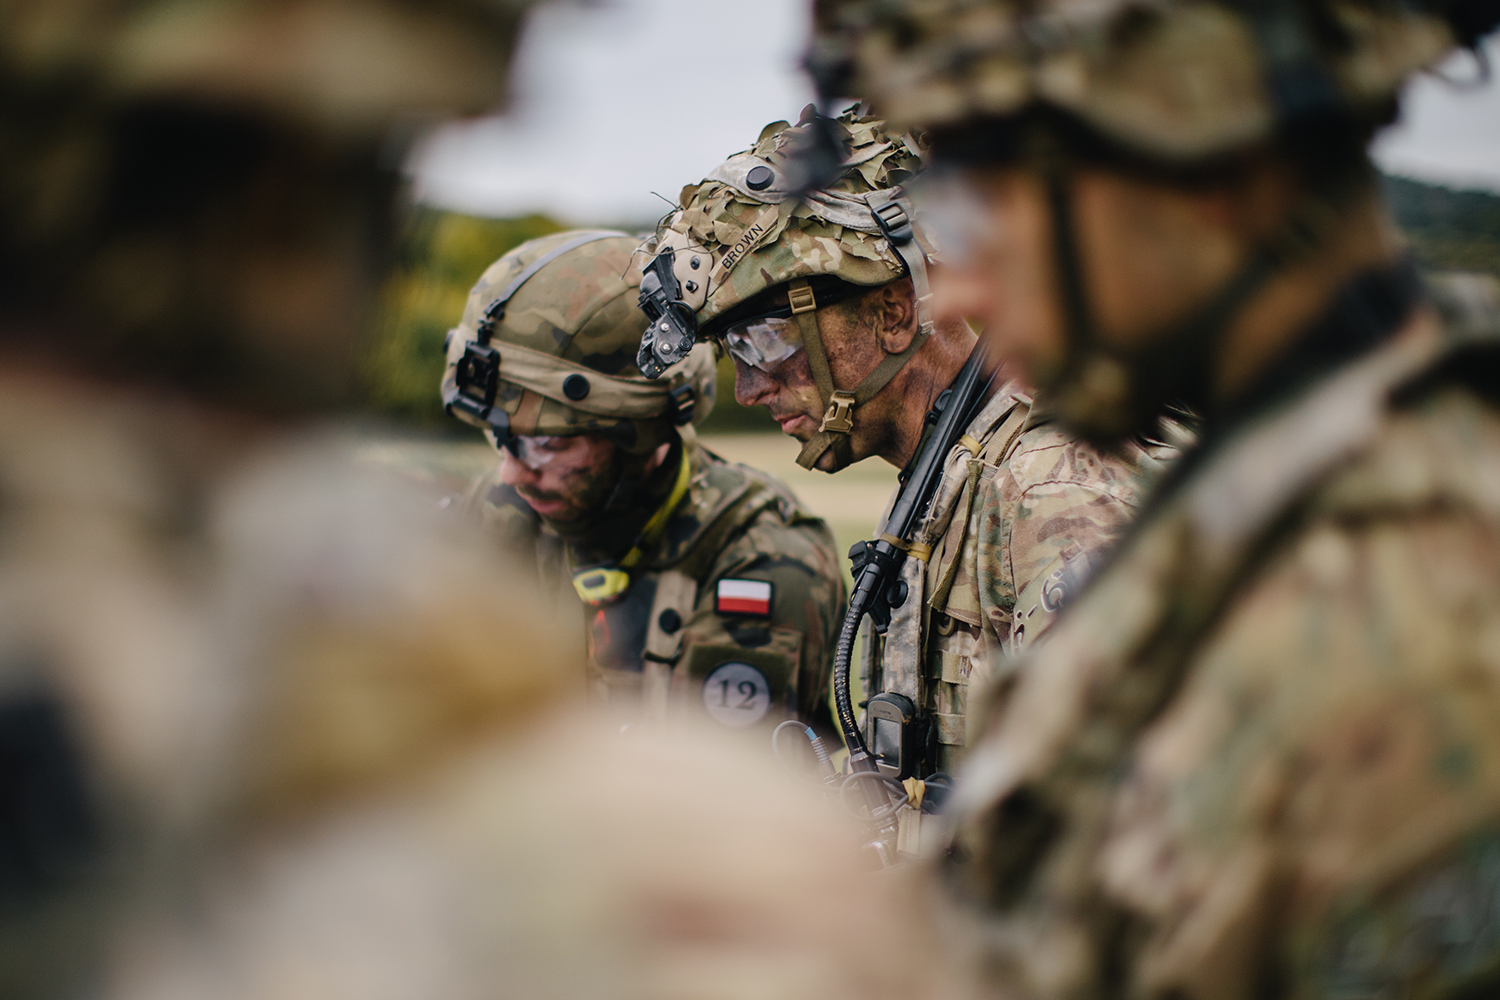 Lt. Col. Joshua Brown, the commander of 1st Squadron, 91st Cavalry Regiment, 173rd Airborne Brigade, discusses and plans upcoming operations alongside his company commanders and officers of the 2nd Battalion, 12th Brigade Polish Army in Hohenfels Training Area, Germany during Saber Junction 19 on Sept. 27, 2019. (Spc. Ryan Lucas/Army)